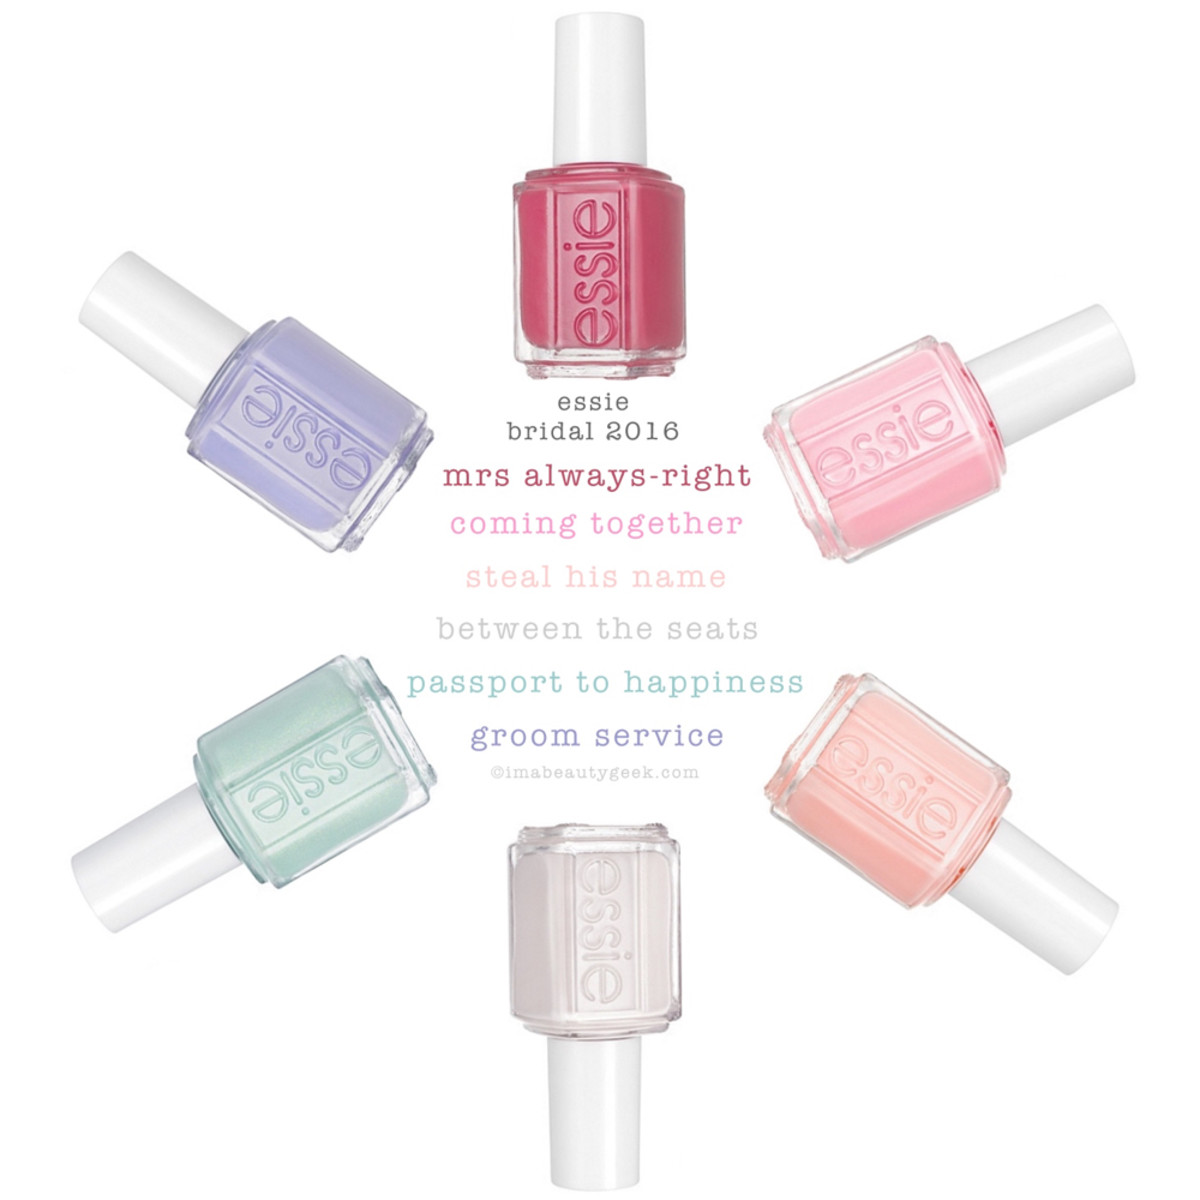 Essie Bridal 2016 Collection with Shade Names